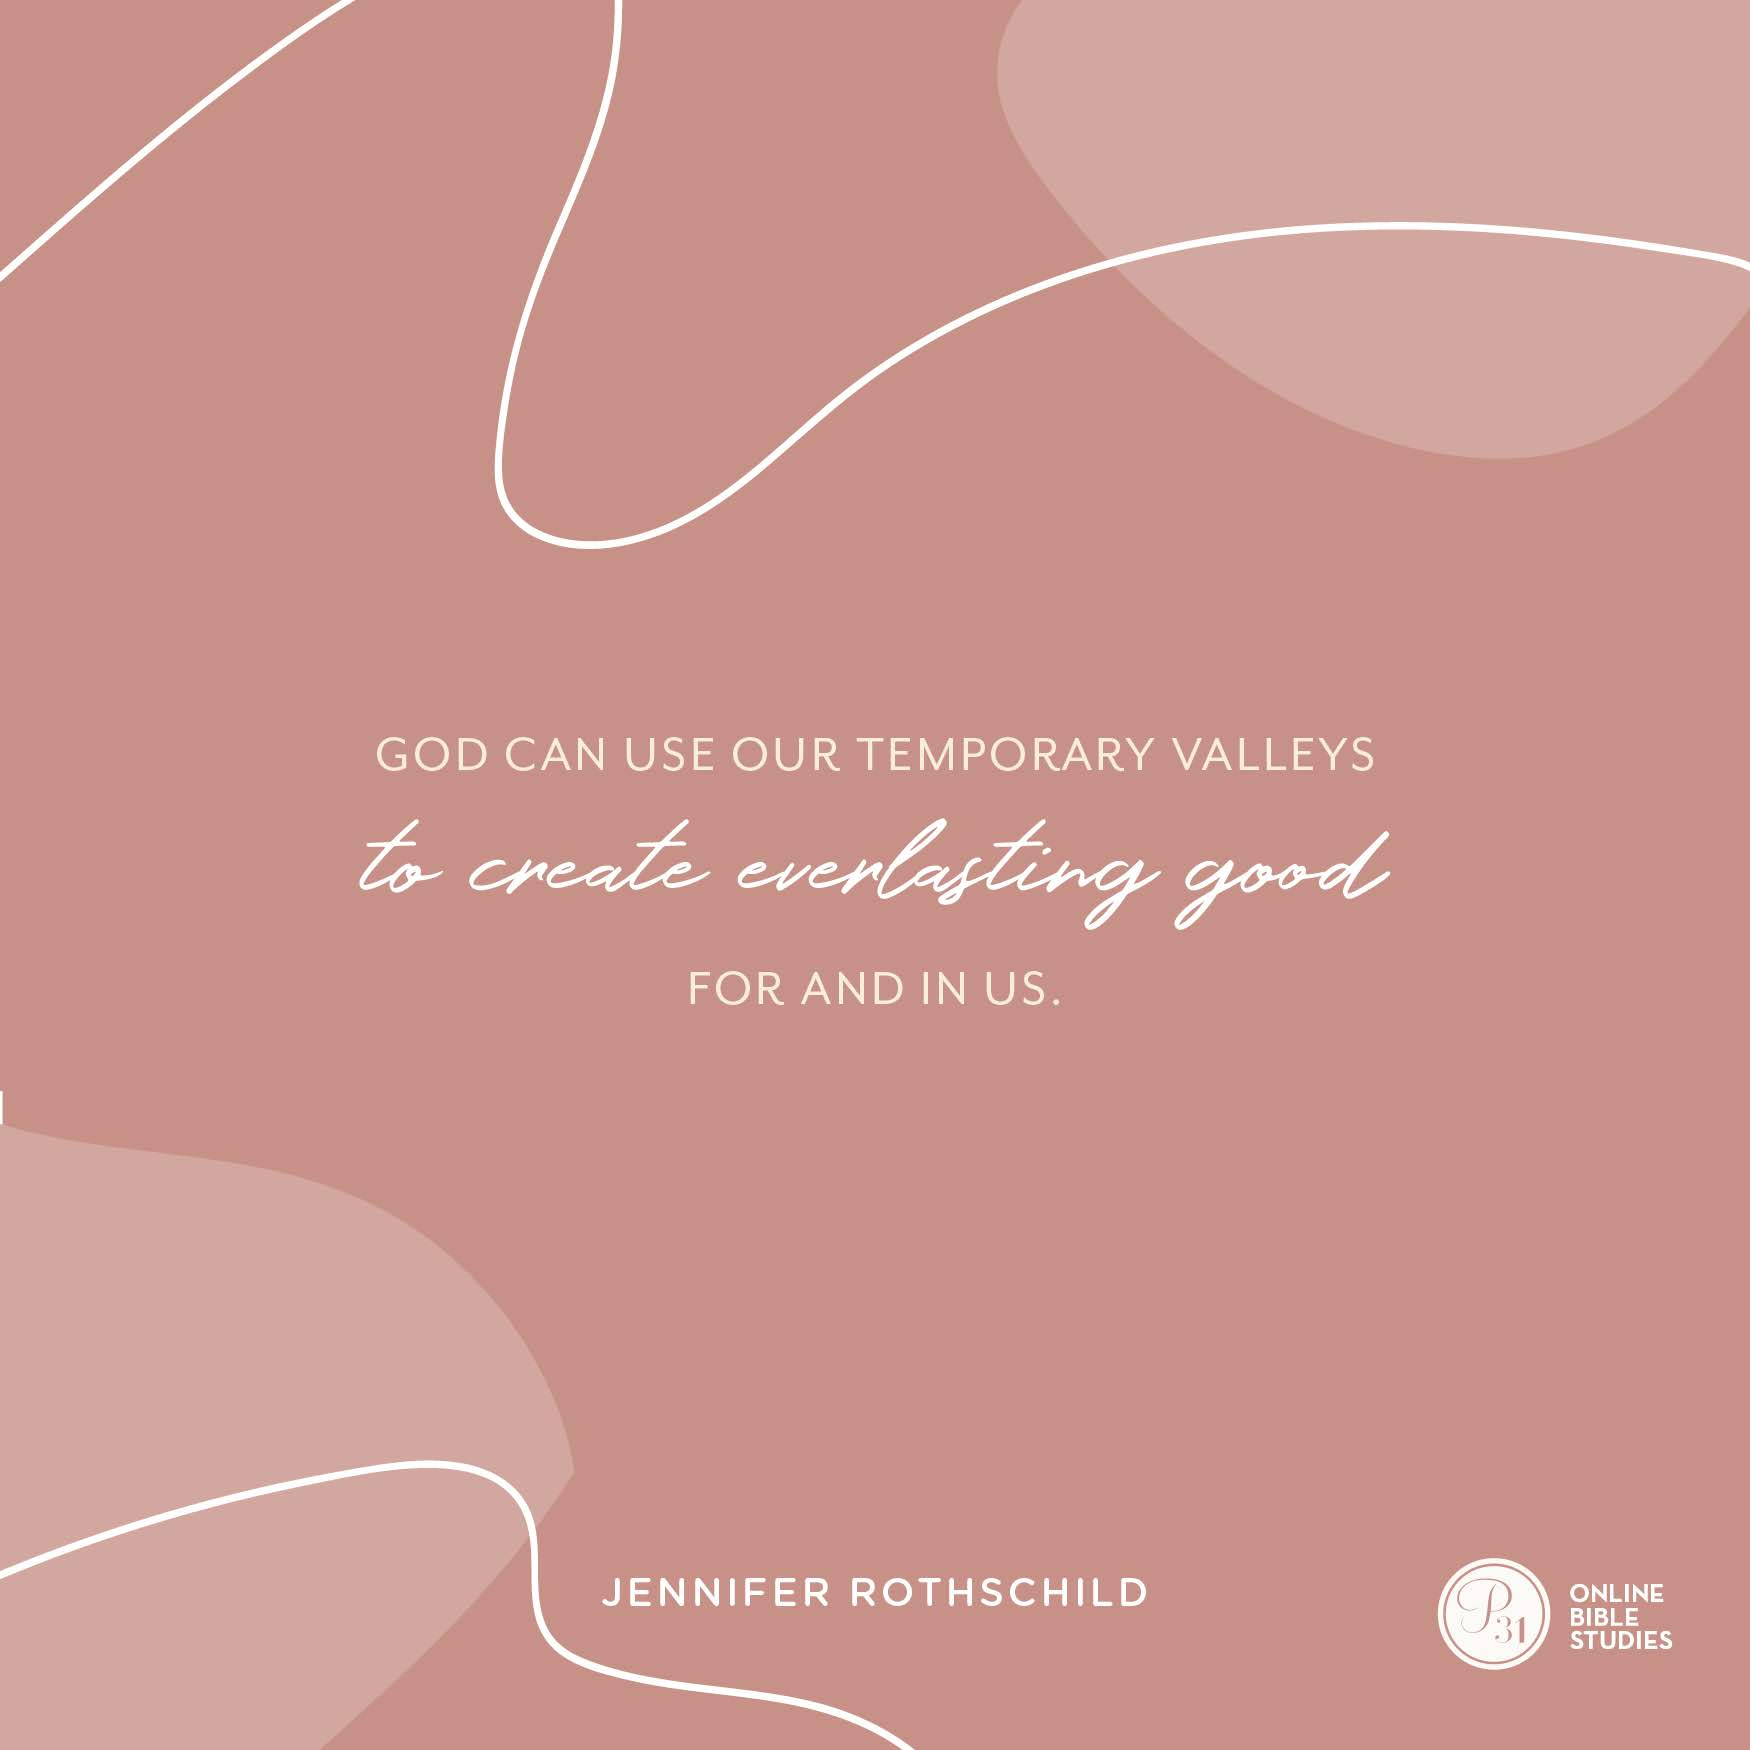 """""""God can use our temporary valleys to create everlasting good for and in us.""""  - Jennifer Rothschild  #Psalm23Study 